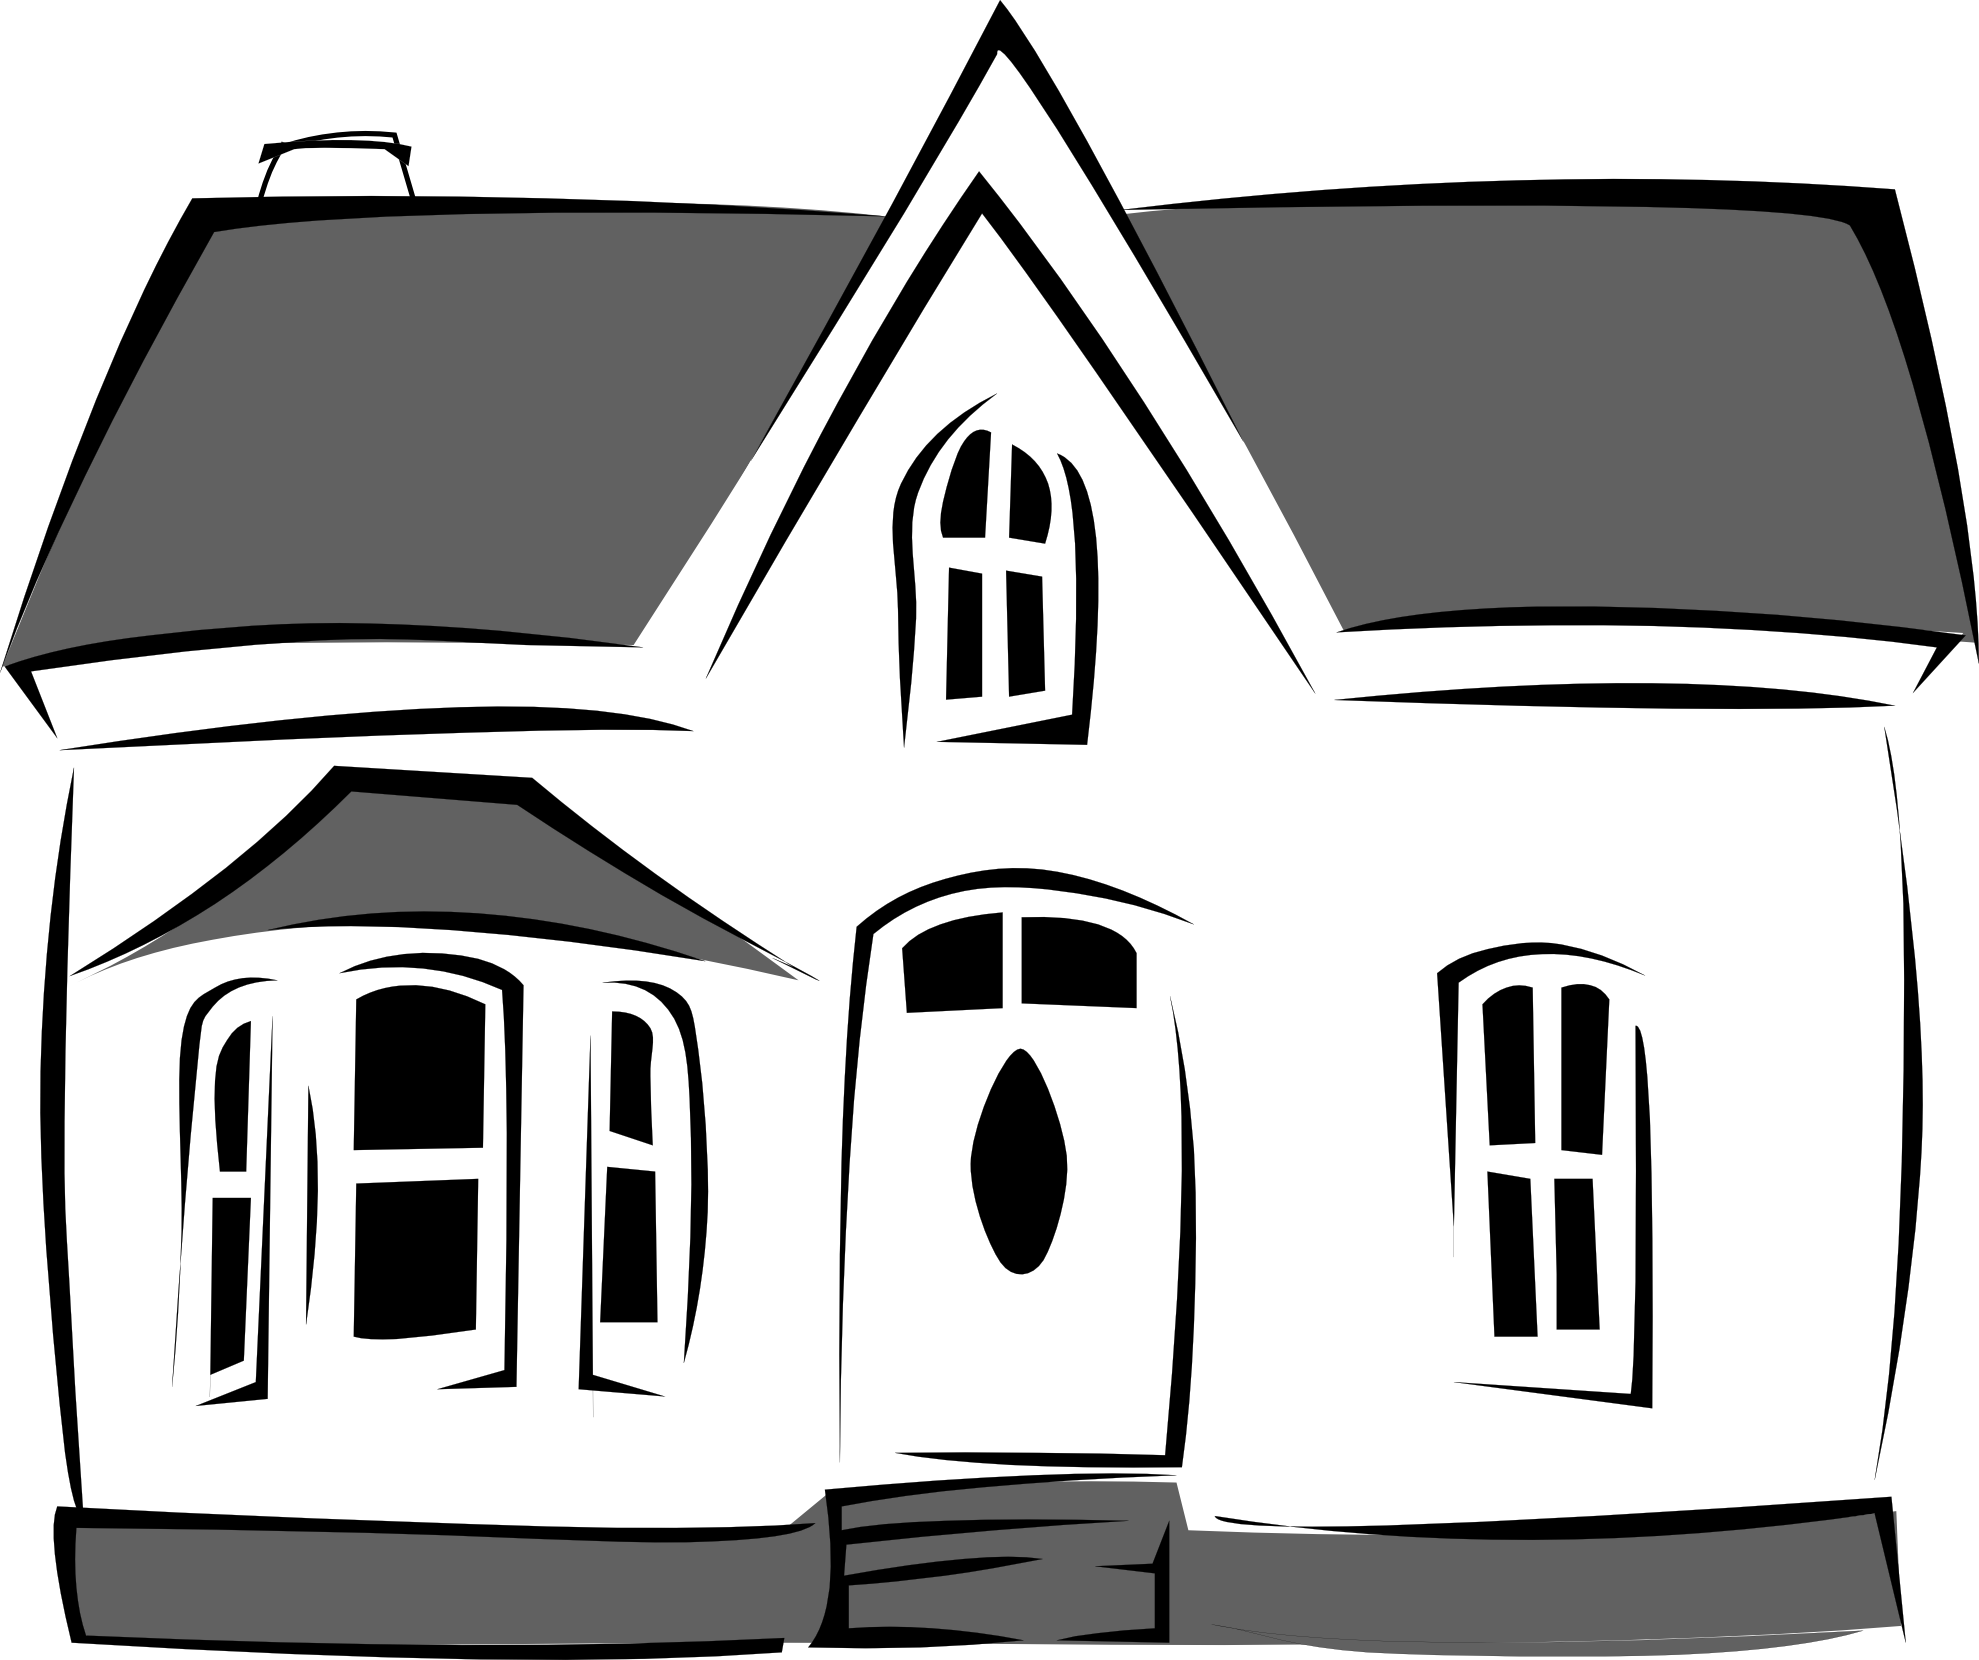 Farm house clipart black and white image freeuse library Black And White Cartoon House ClipArt Best, black and white house ... image freeuse library